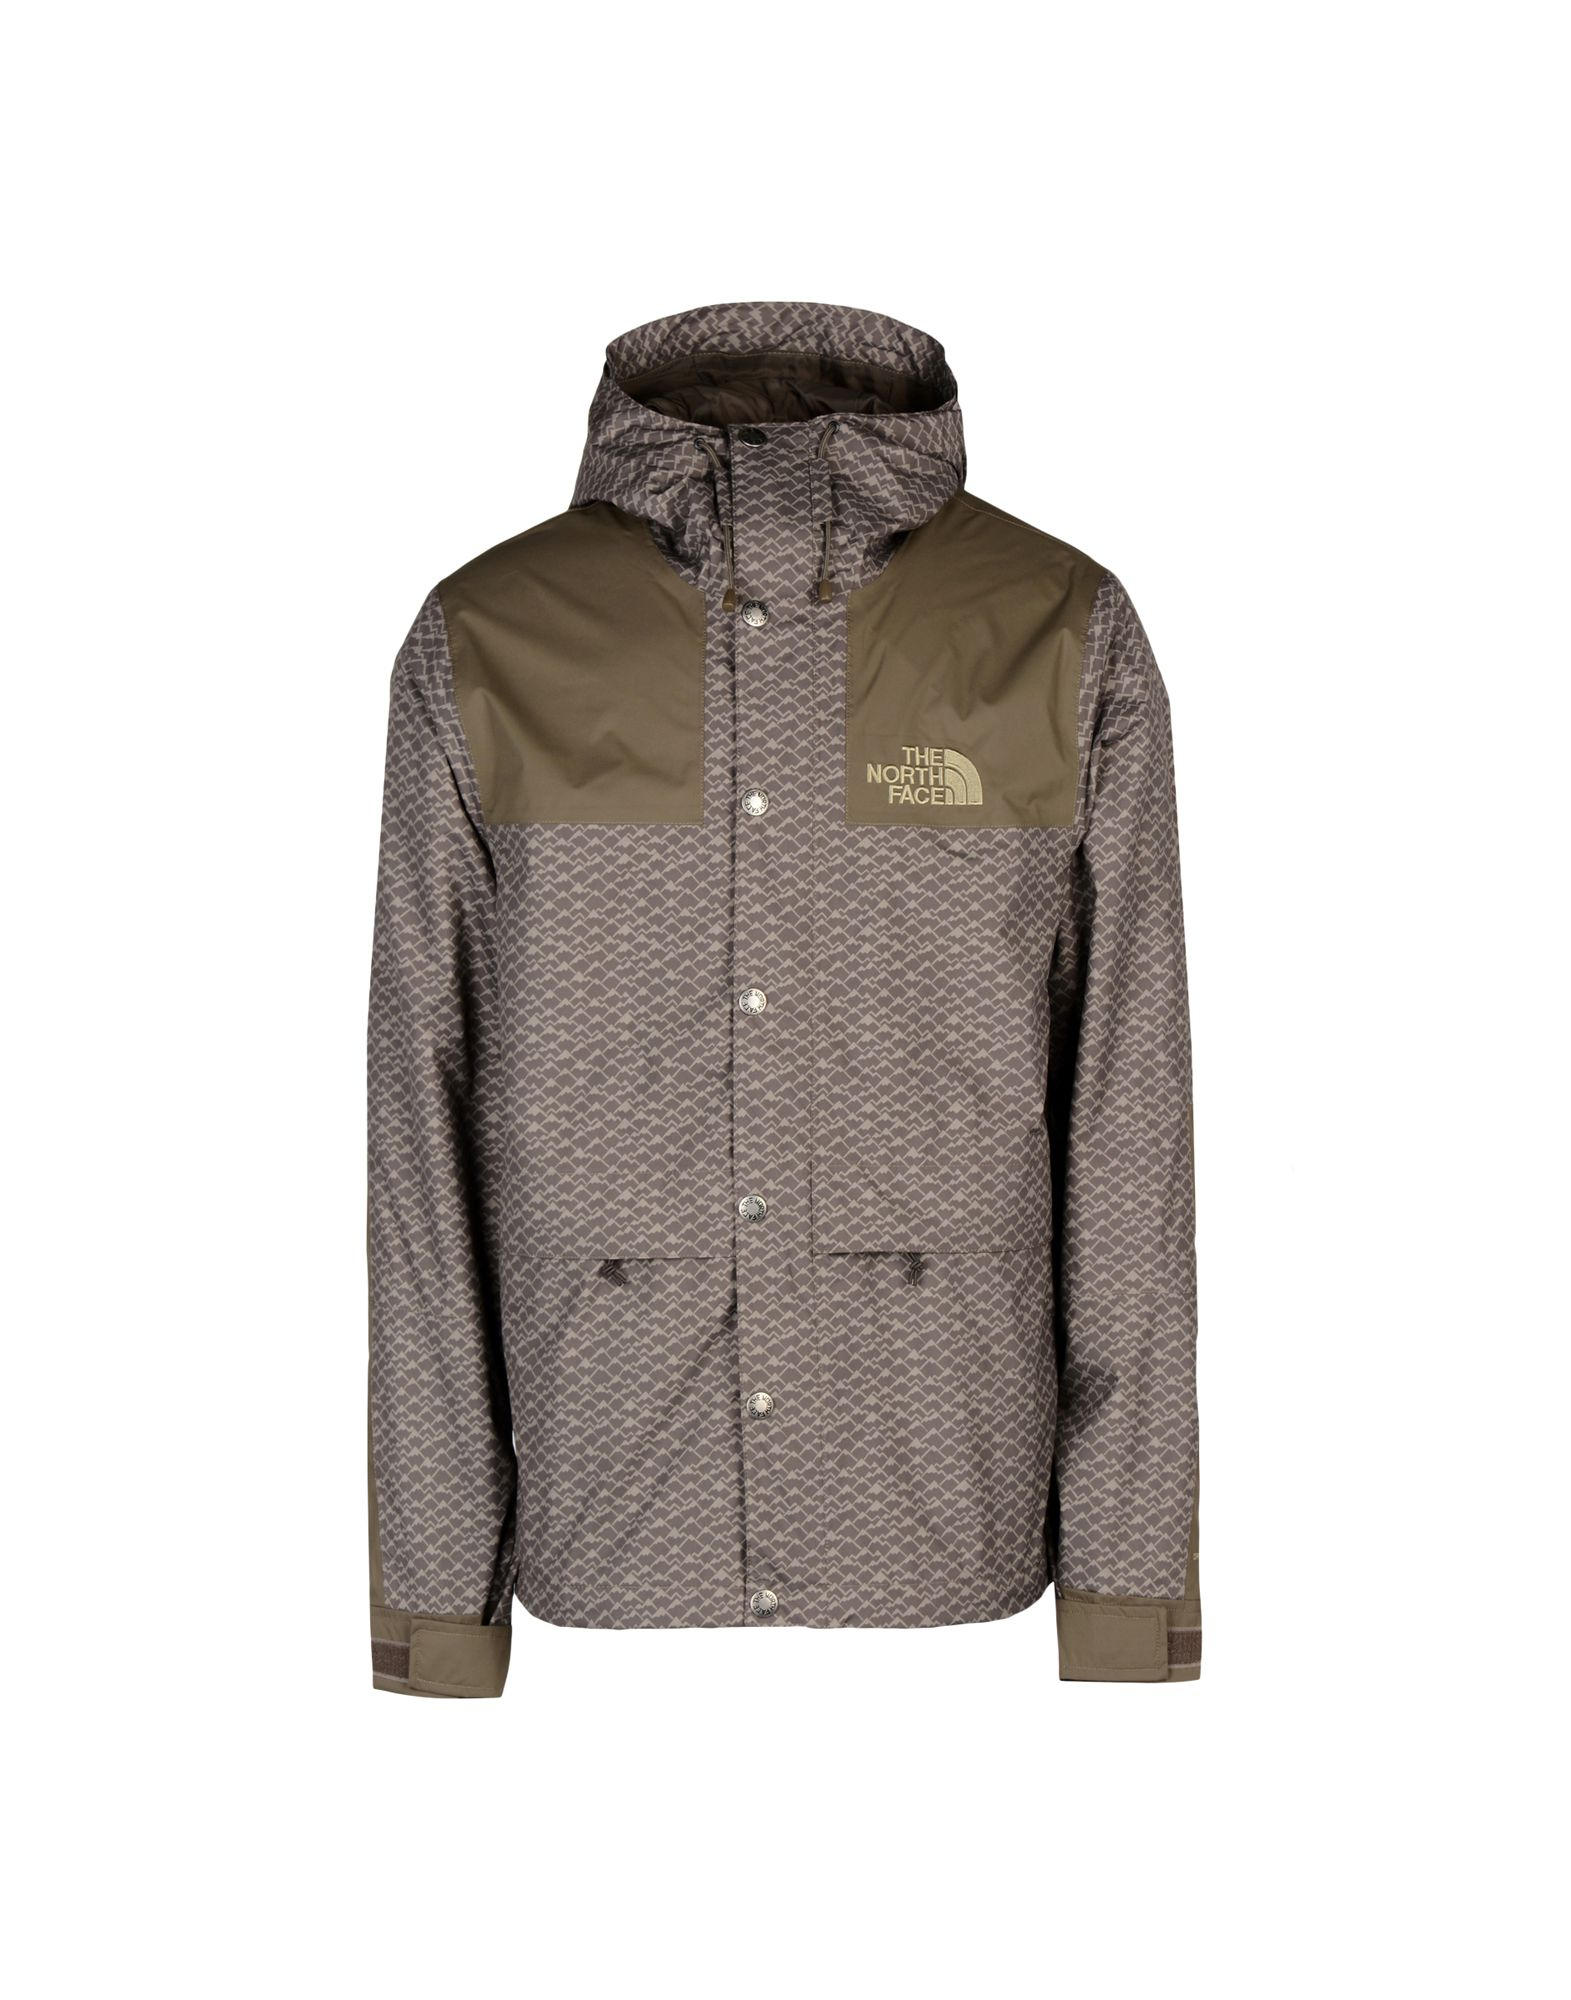 Giubbotto The North Face M 1985 Rage Mountain Jacket 2L Dryvent Waterproof - Uomo - Acquista online su